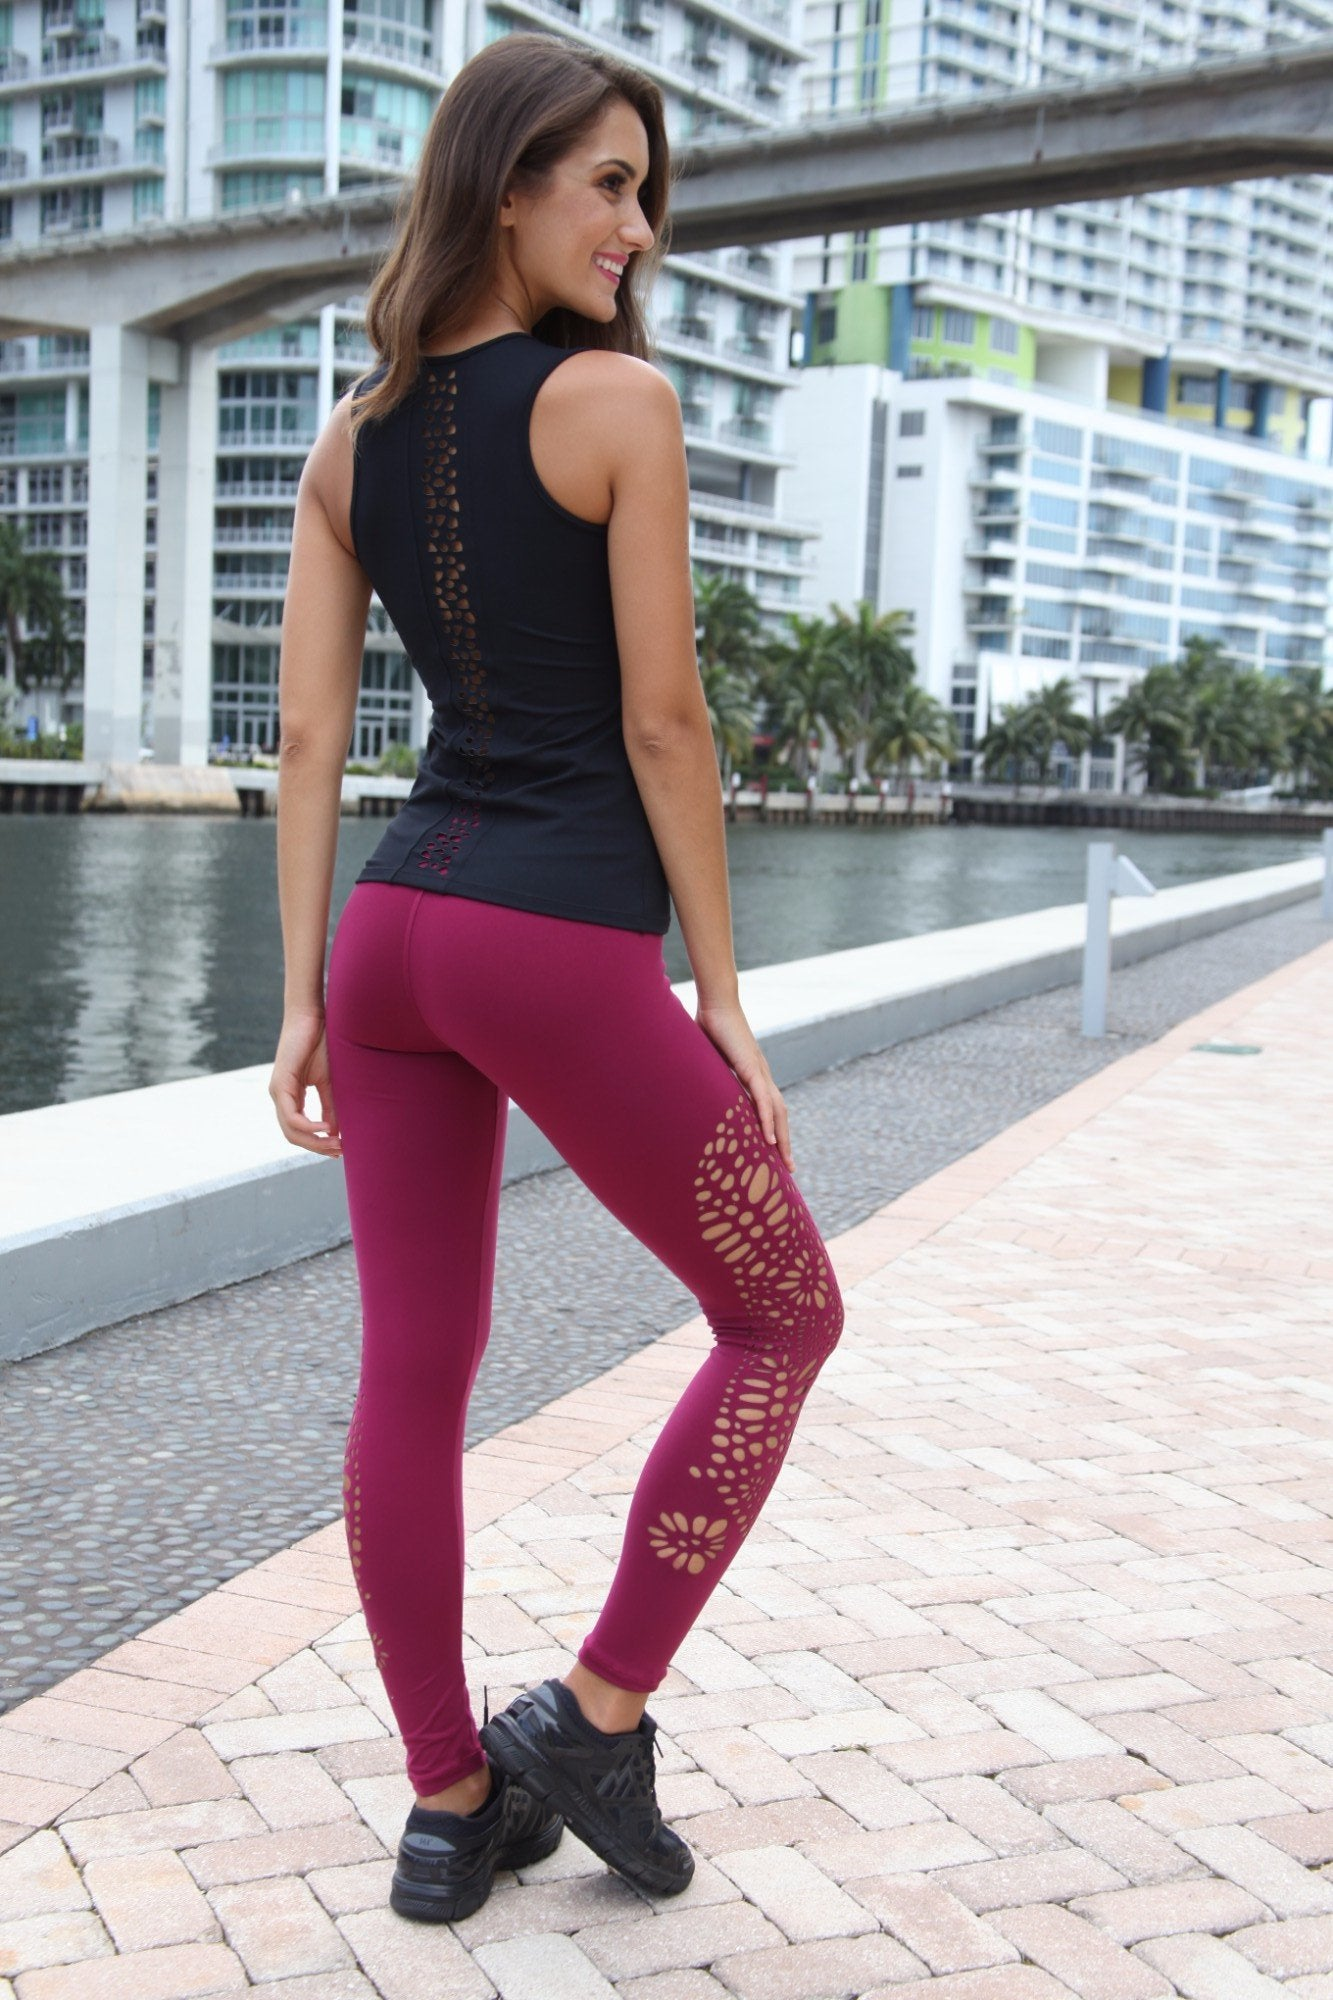 Designer Pink Legging with Net Style L7020 - Equilibrium Activewear - Image 4